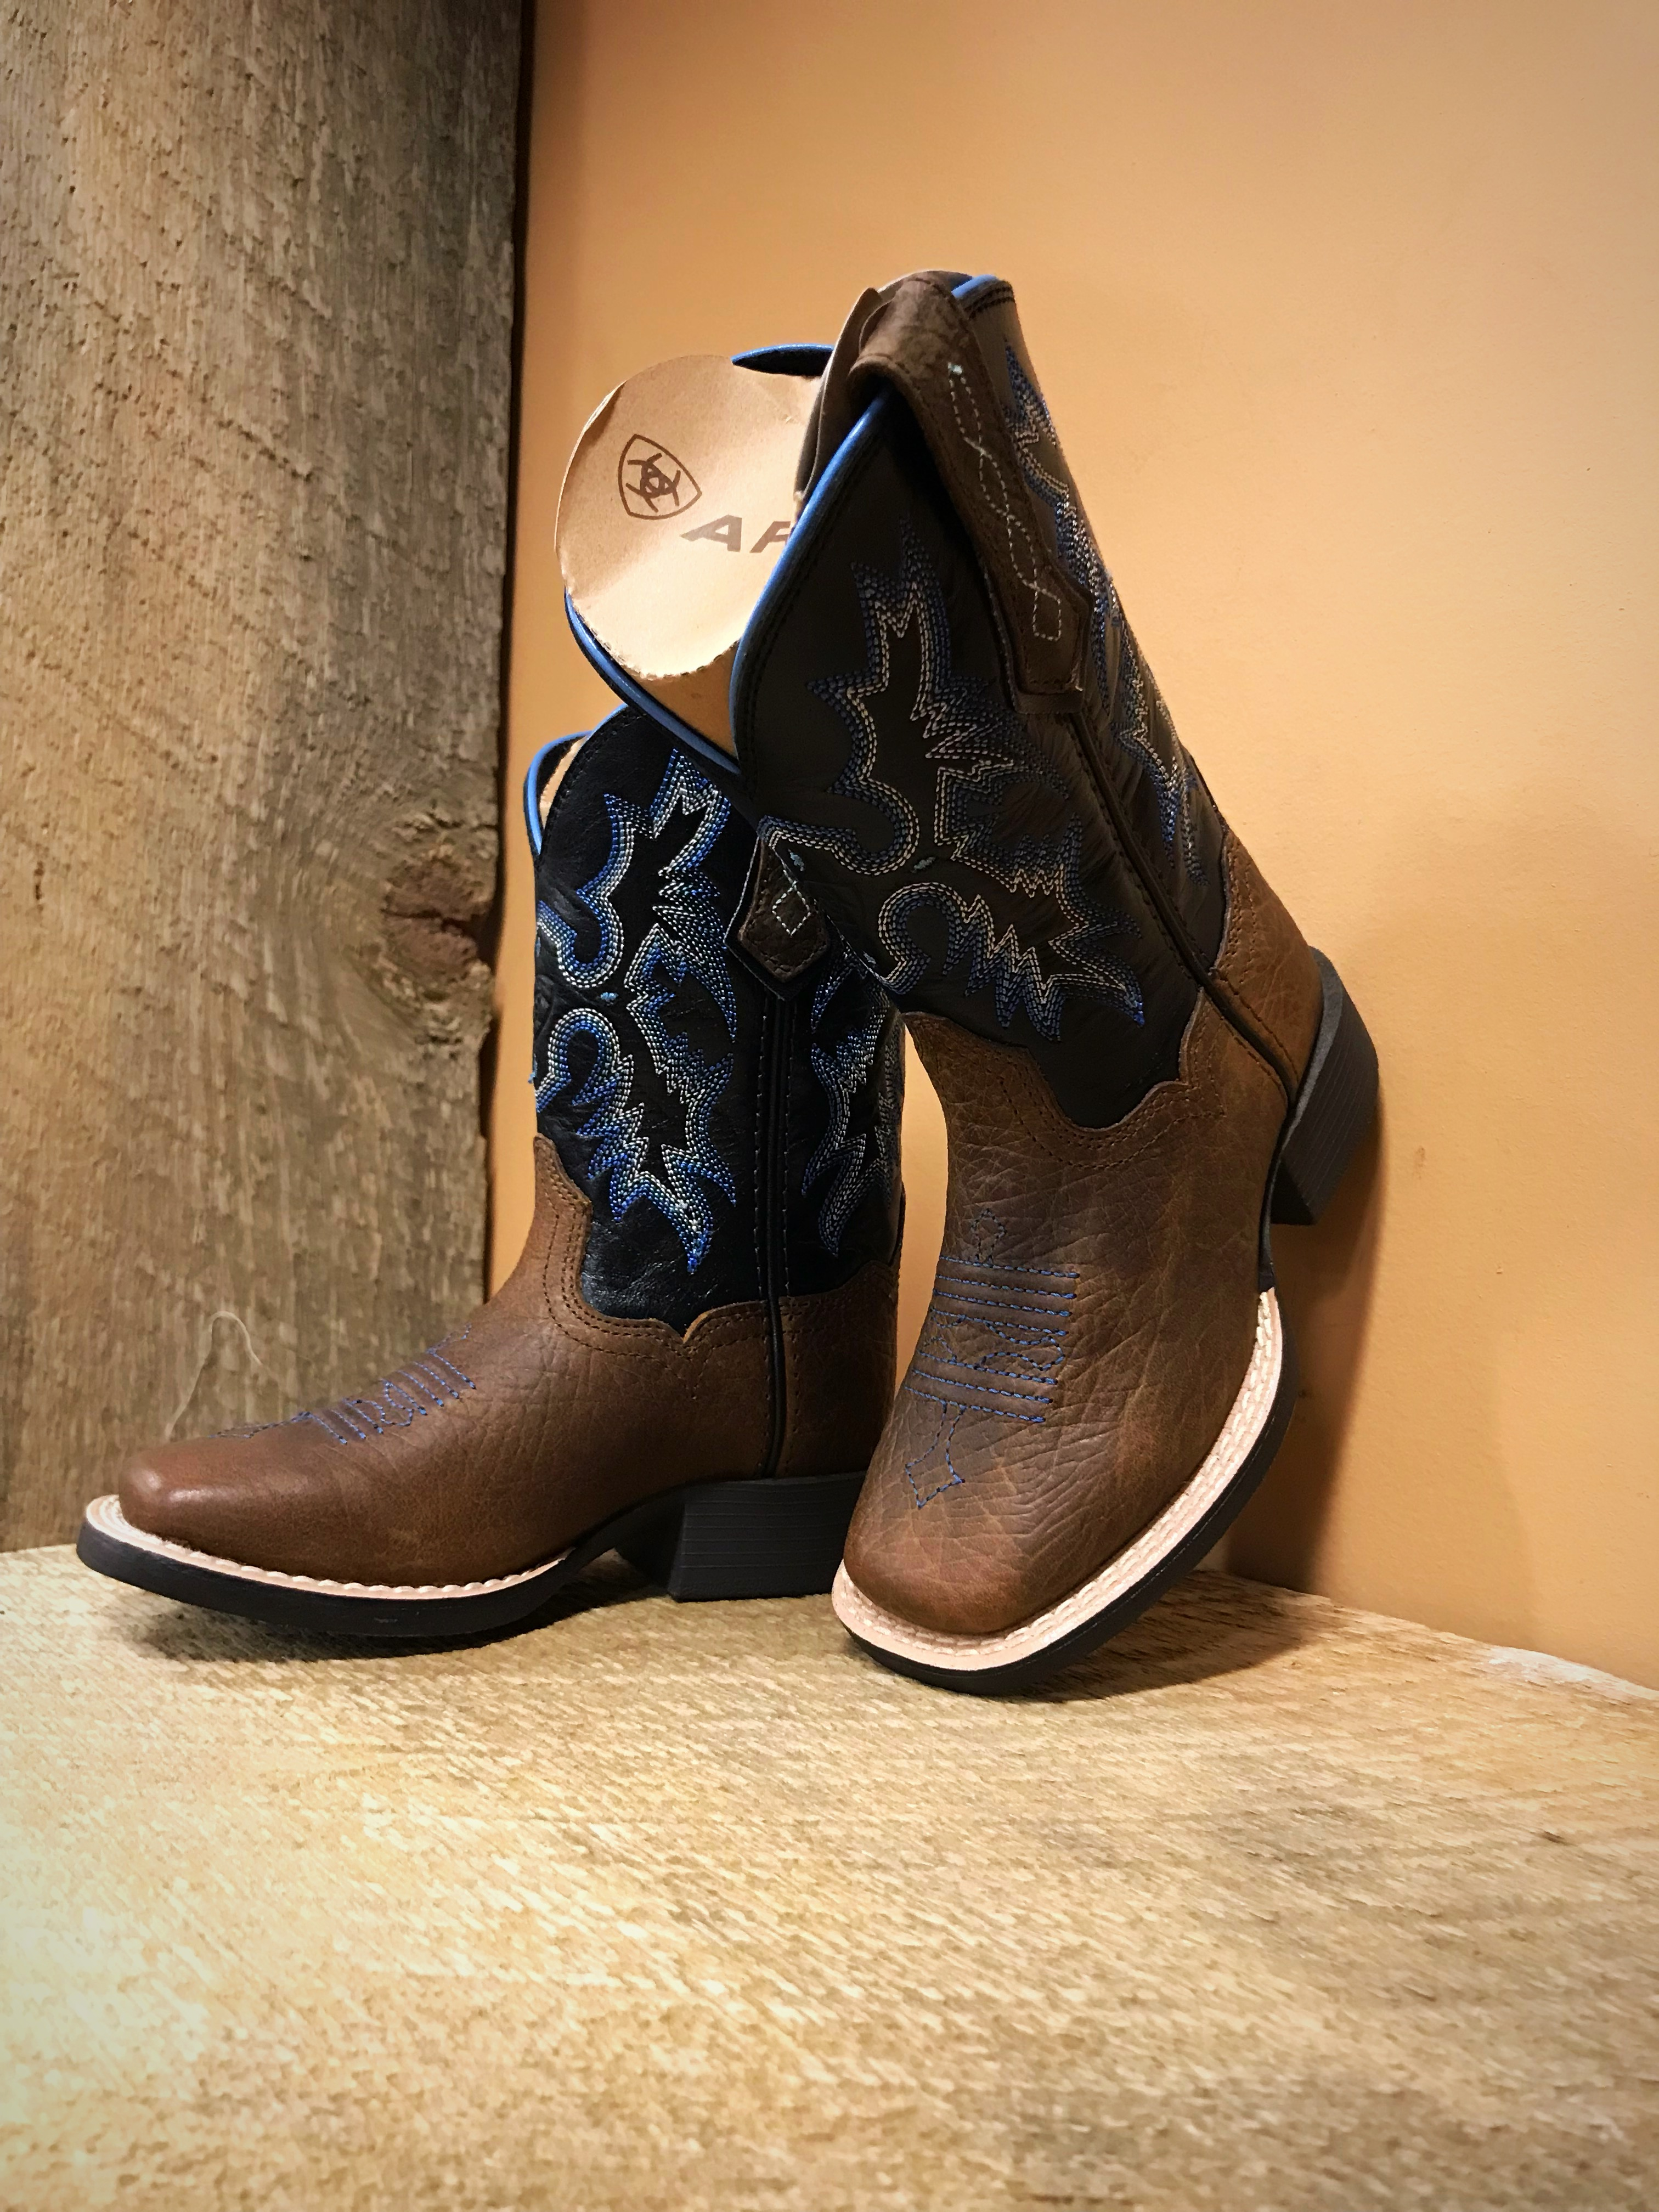 Youth Ariat Boots